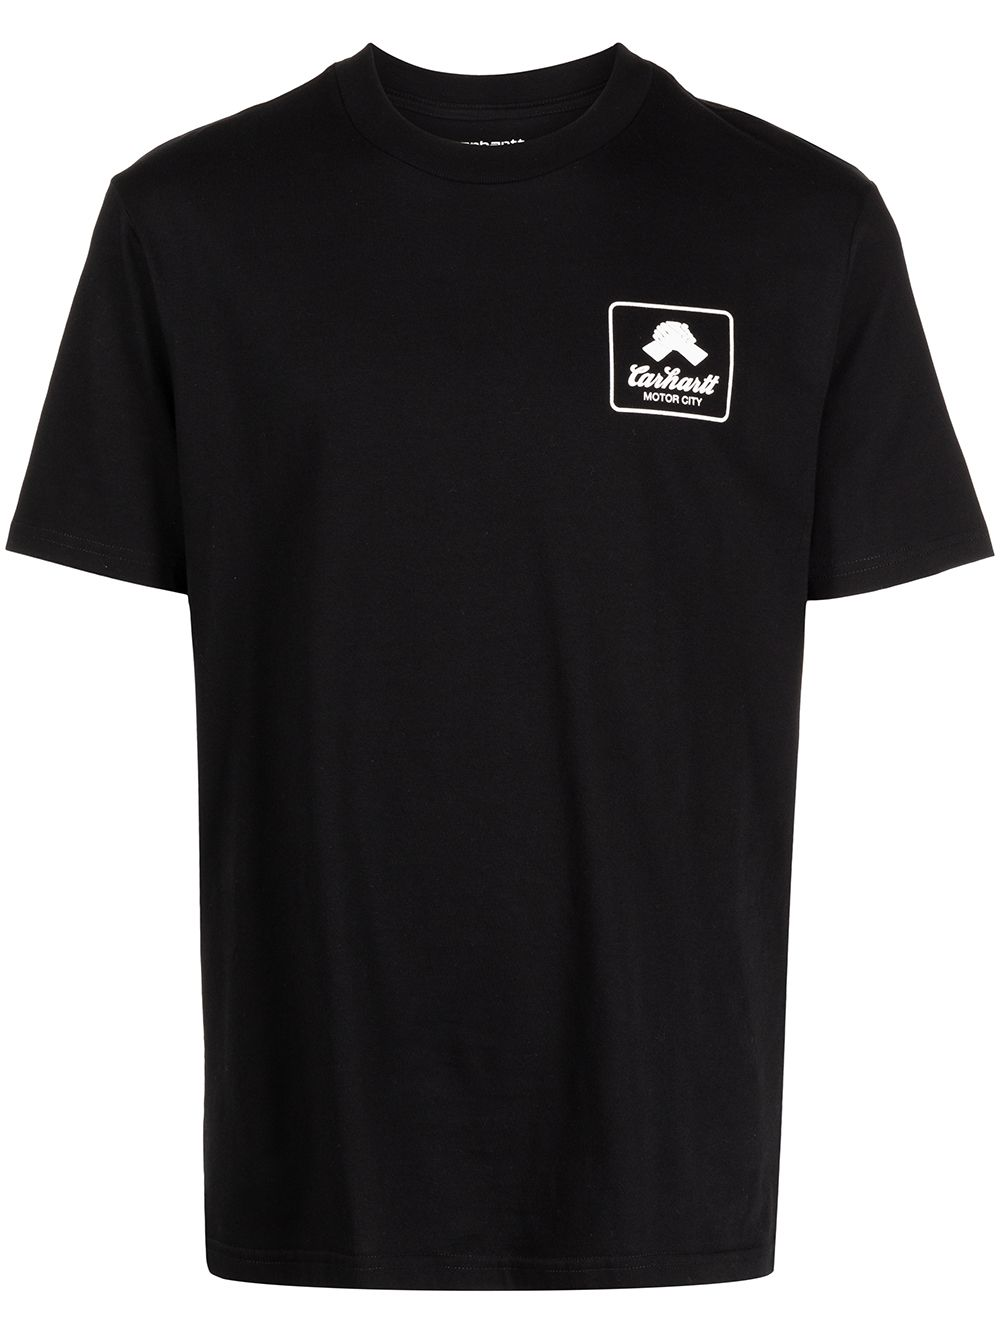 peace state t-shirt man black in cotton CARHARTT WIP   T-shirts   I02893189.90